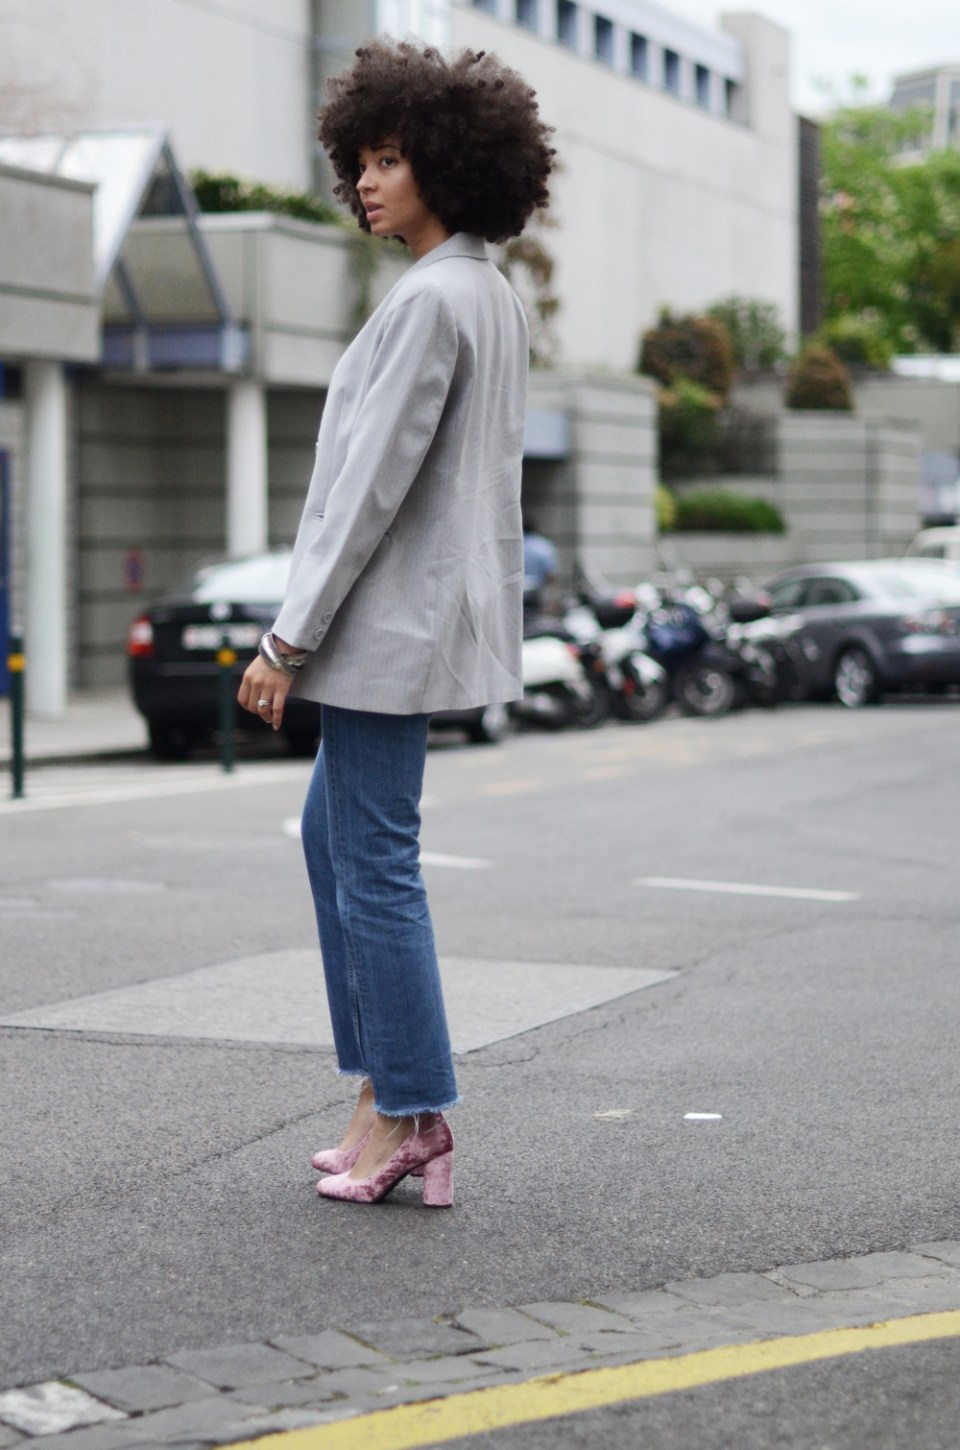 mercredie-blog-mode-geneve-suisse-levis-501-h&m-babies-velours-veste-blazer-vintage-afro-natural-curly-hair-cheveux-frises2